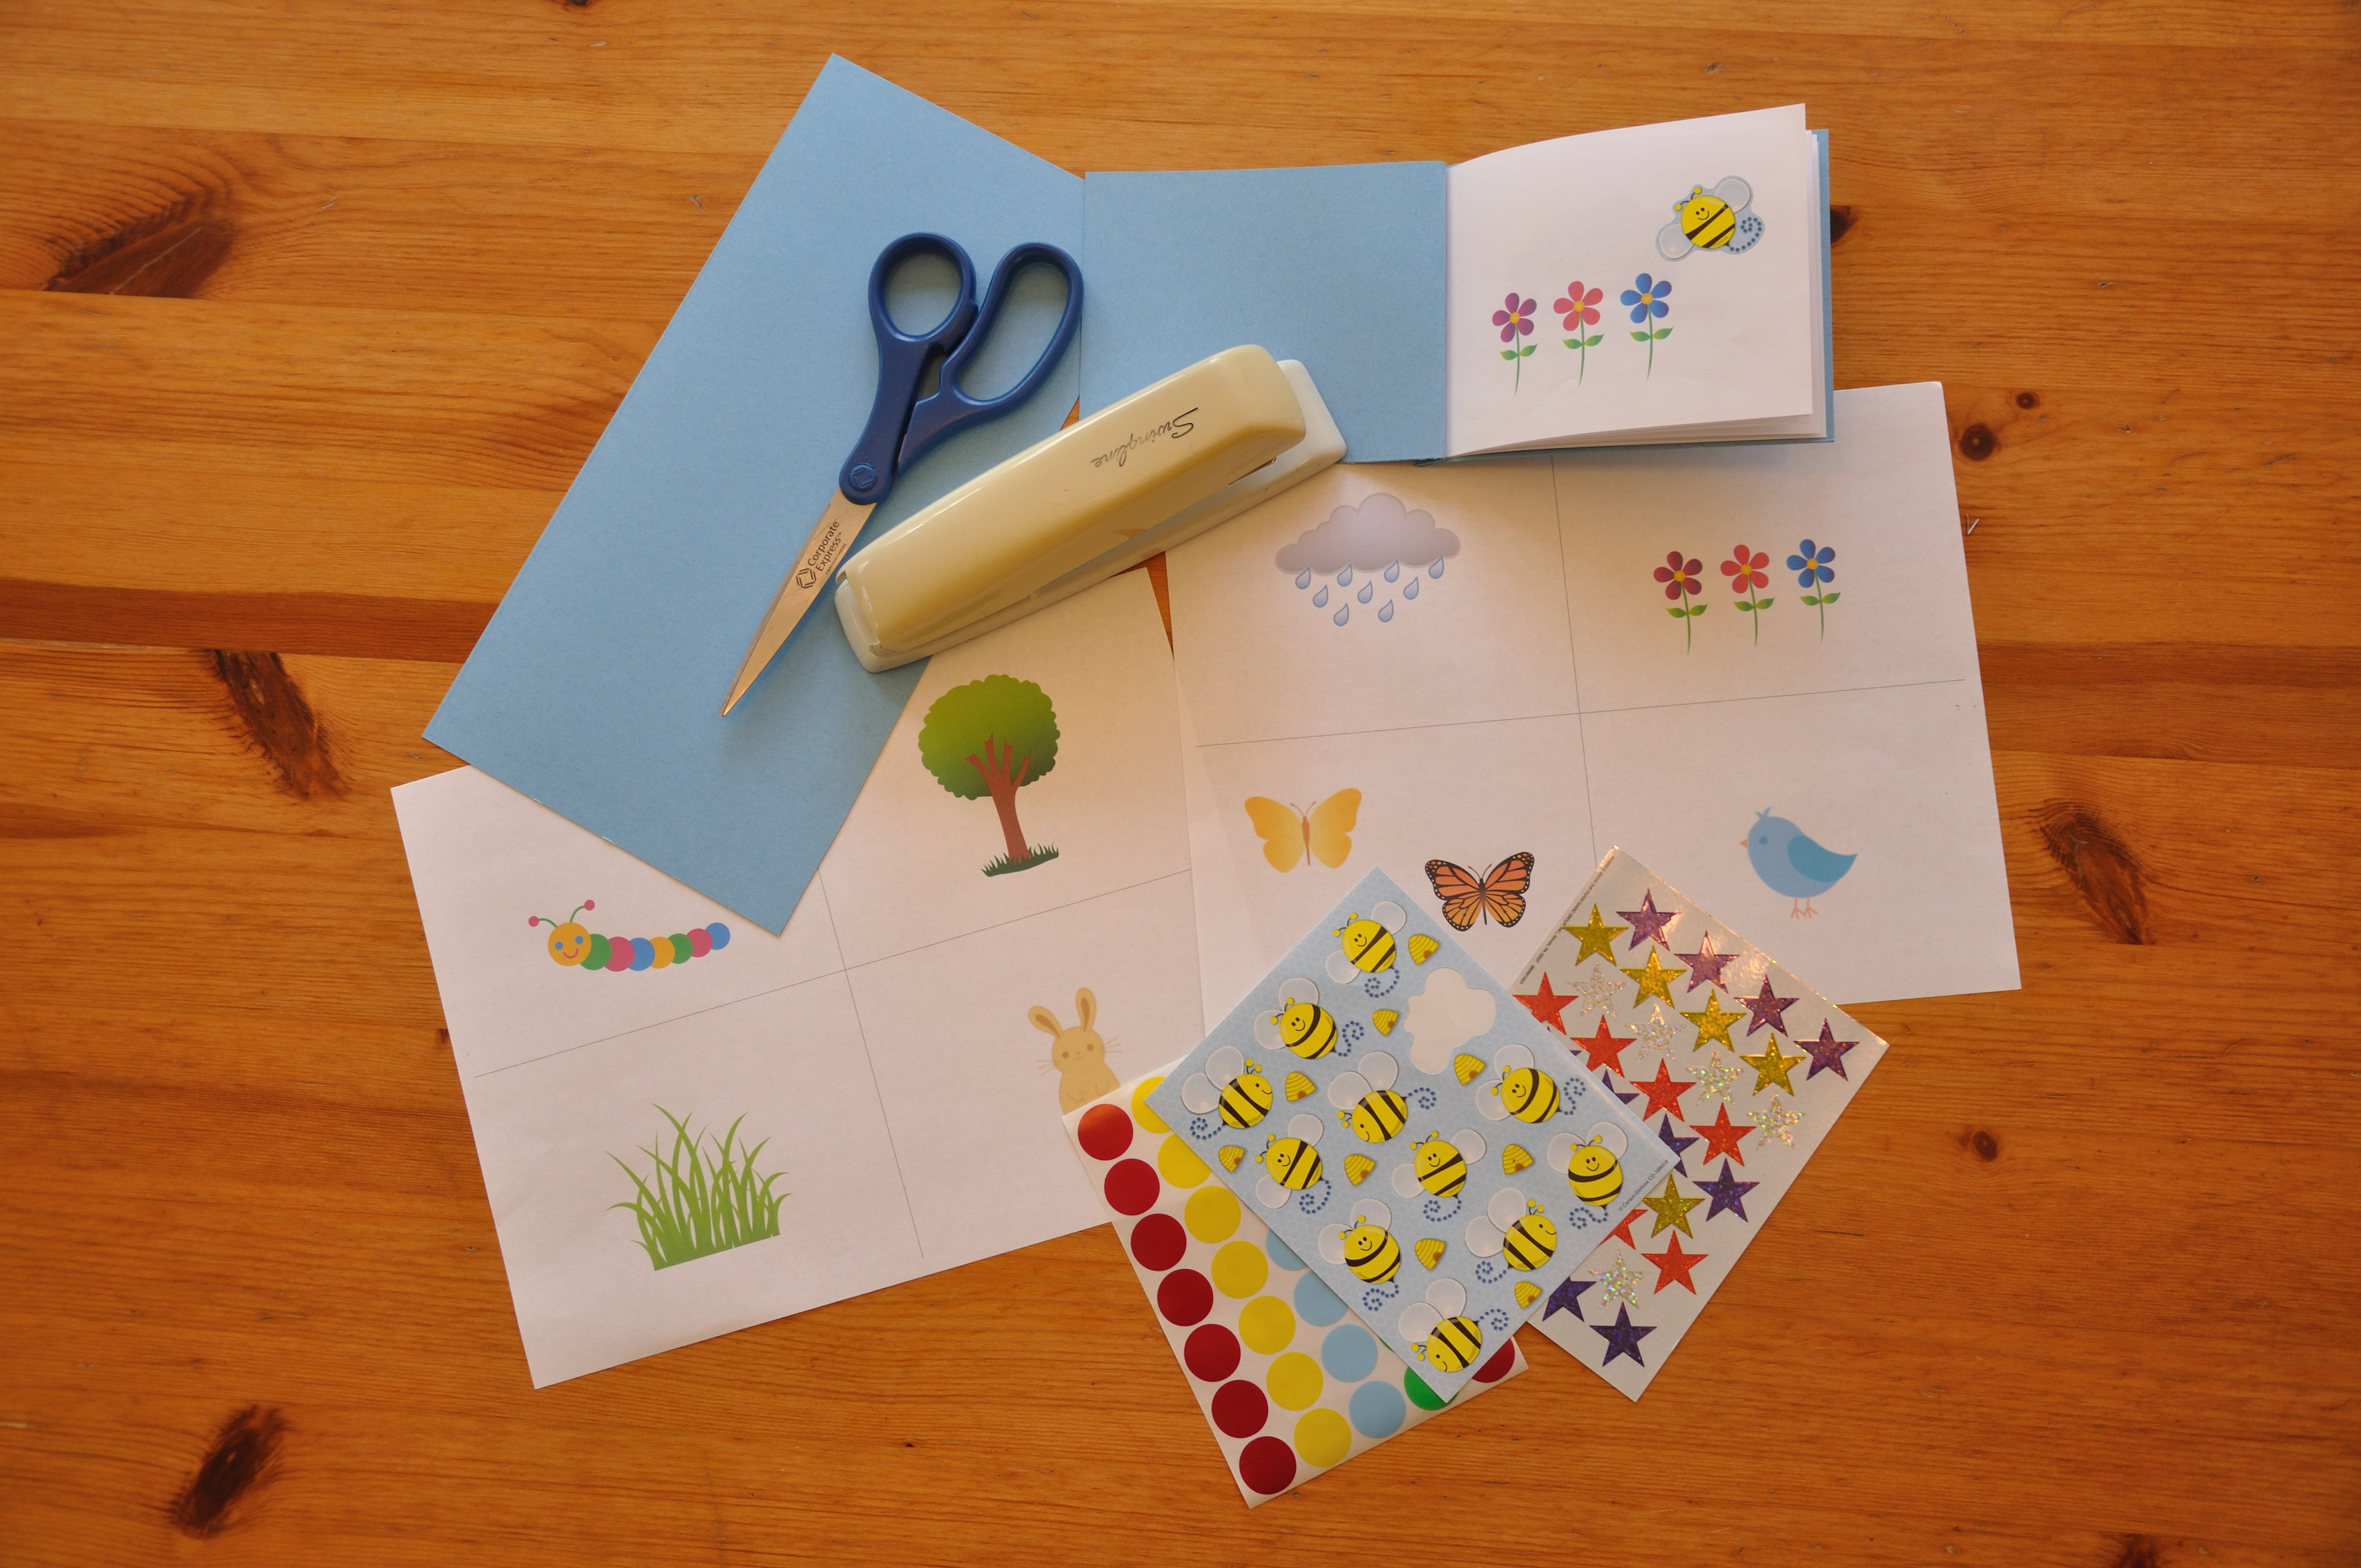 mini sticker book activity